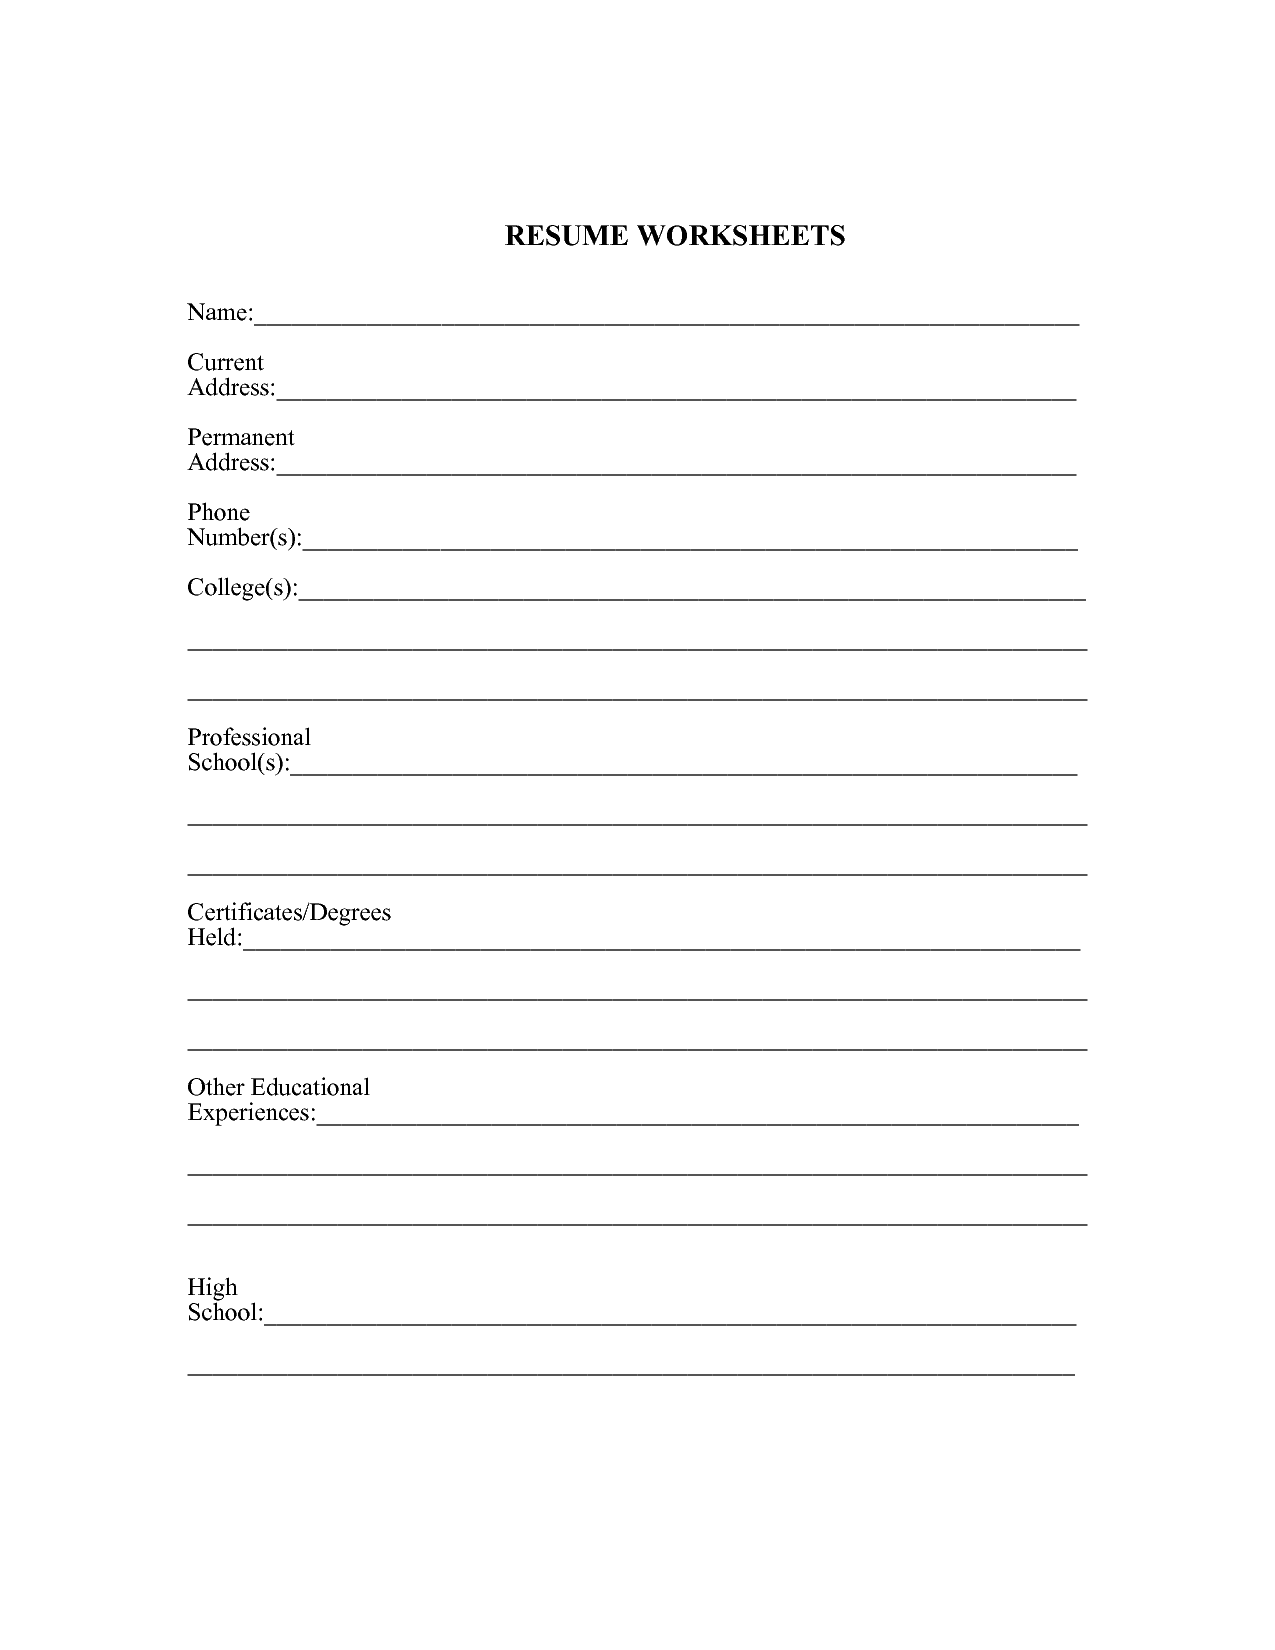 Esl Worksheets For High School Students : Worksheet resume for high school students